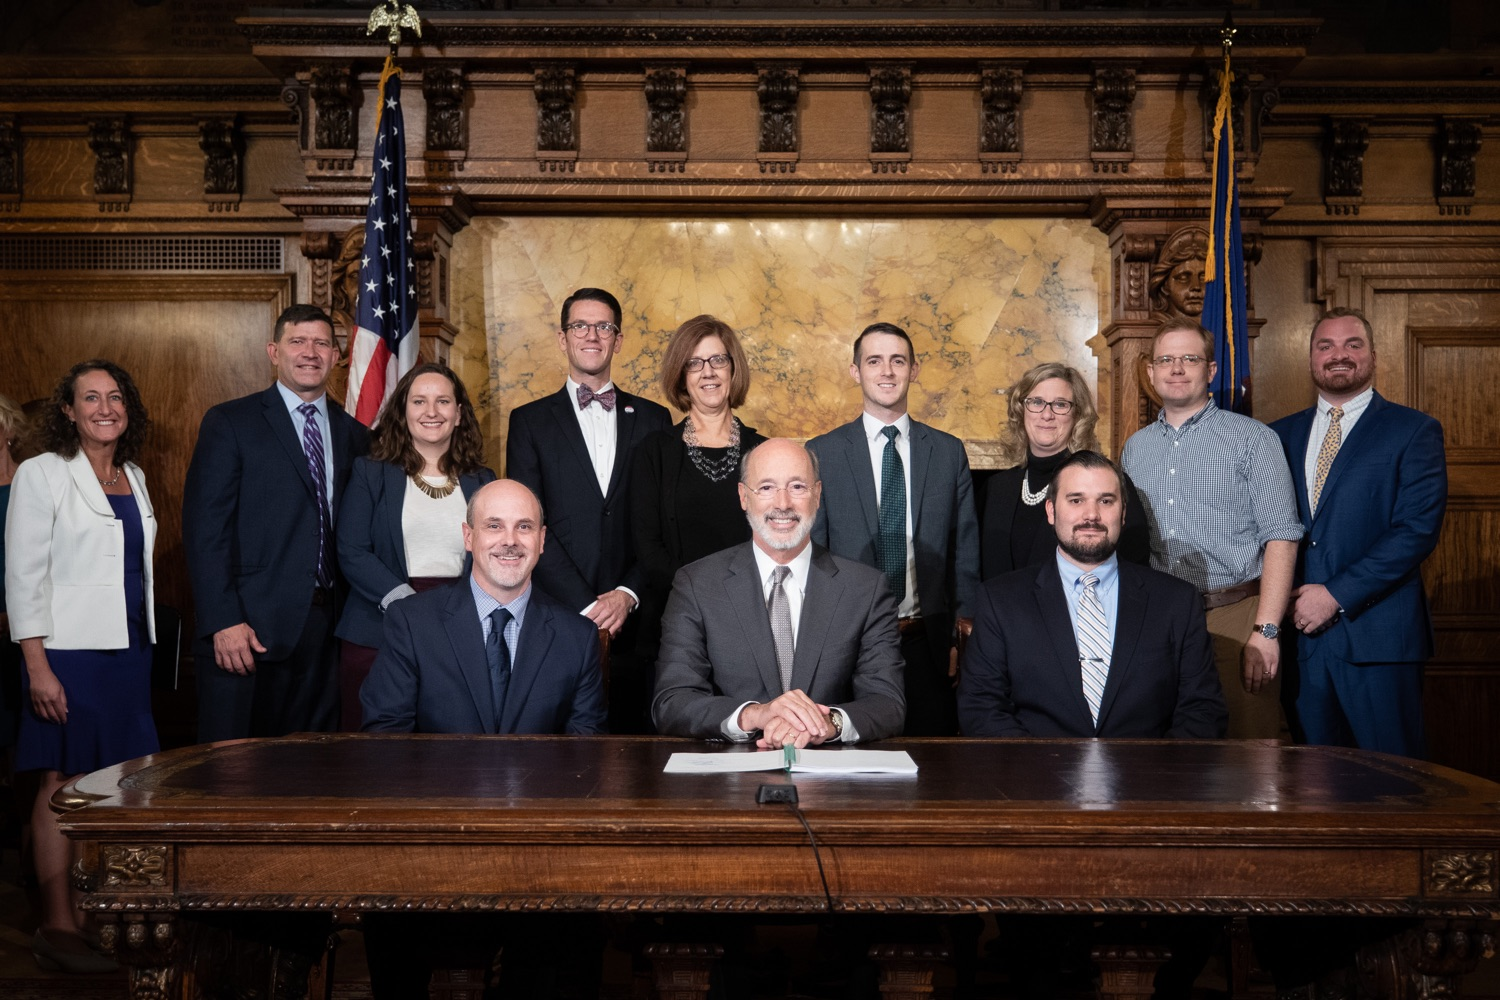 "<a href=""https://filesource.wostreaming.net/commonwealthofpa/photo/17554_gov_voter_reform_bill_dz_023.jpg"" target=""_blank"">⇣ Download Photo<br></a>Harrisburg, PA  Governor Tom Wolf posing with attendees after the bill signing. Governor Wolf made voting more convenient and secure by signing Act 77 of 2019, the most significant improvement to Pennsylvanias elections in more than 80 years. The bipartisan compromise legislation takes effect for the April 2020 primary election and makes Pennsylvania a national leader with voter-friendly election reforms."